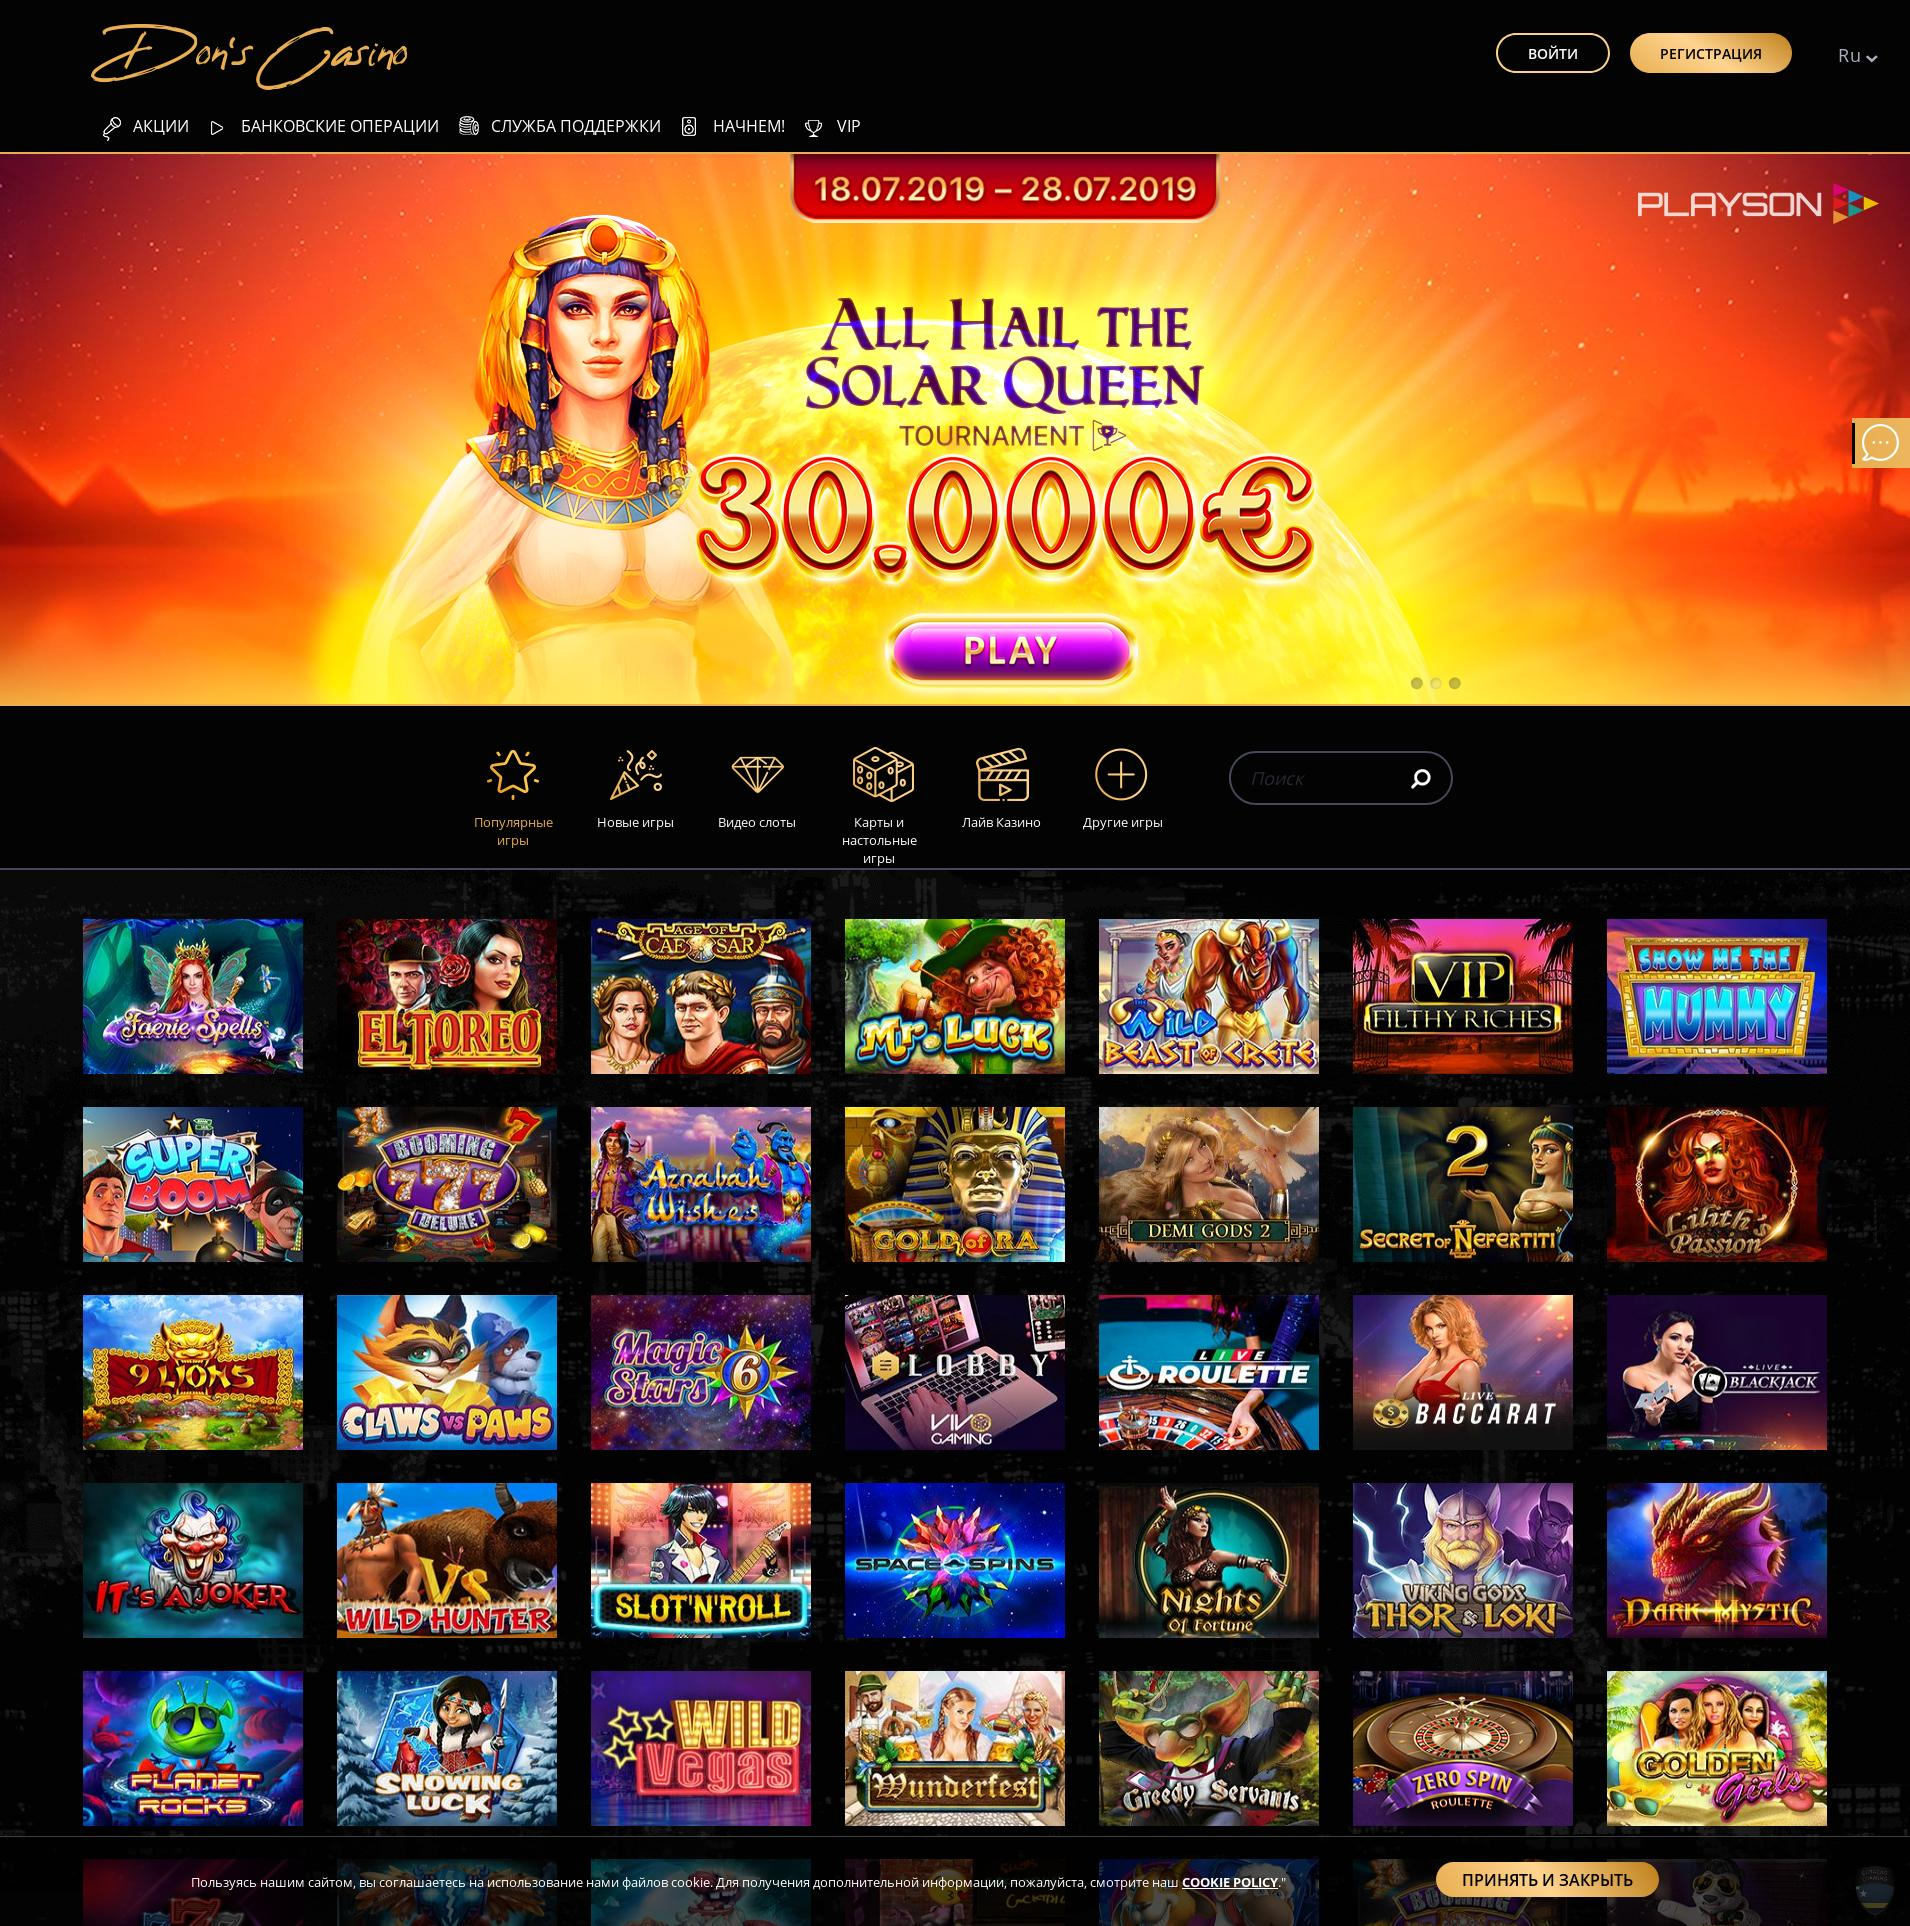 Casino screen Lobby 2019-10-19 for Russian Federation